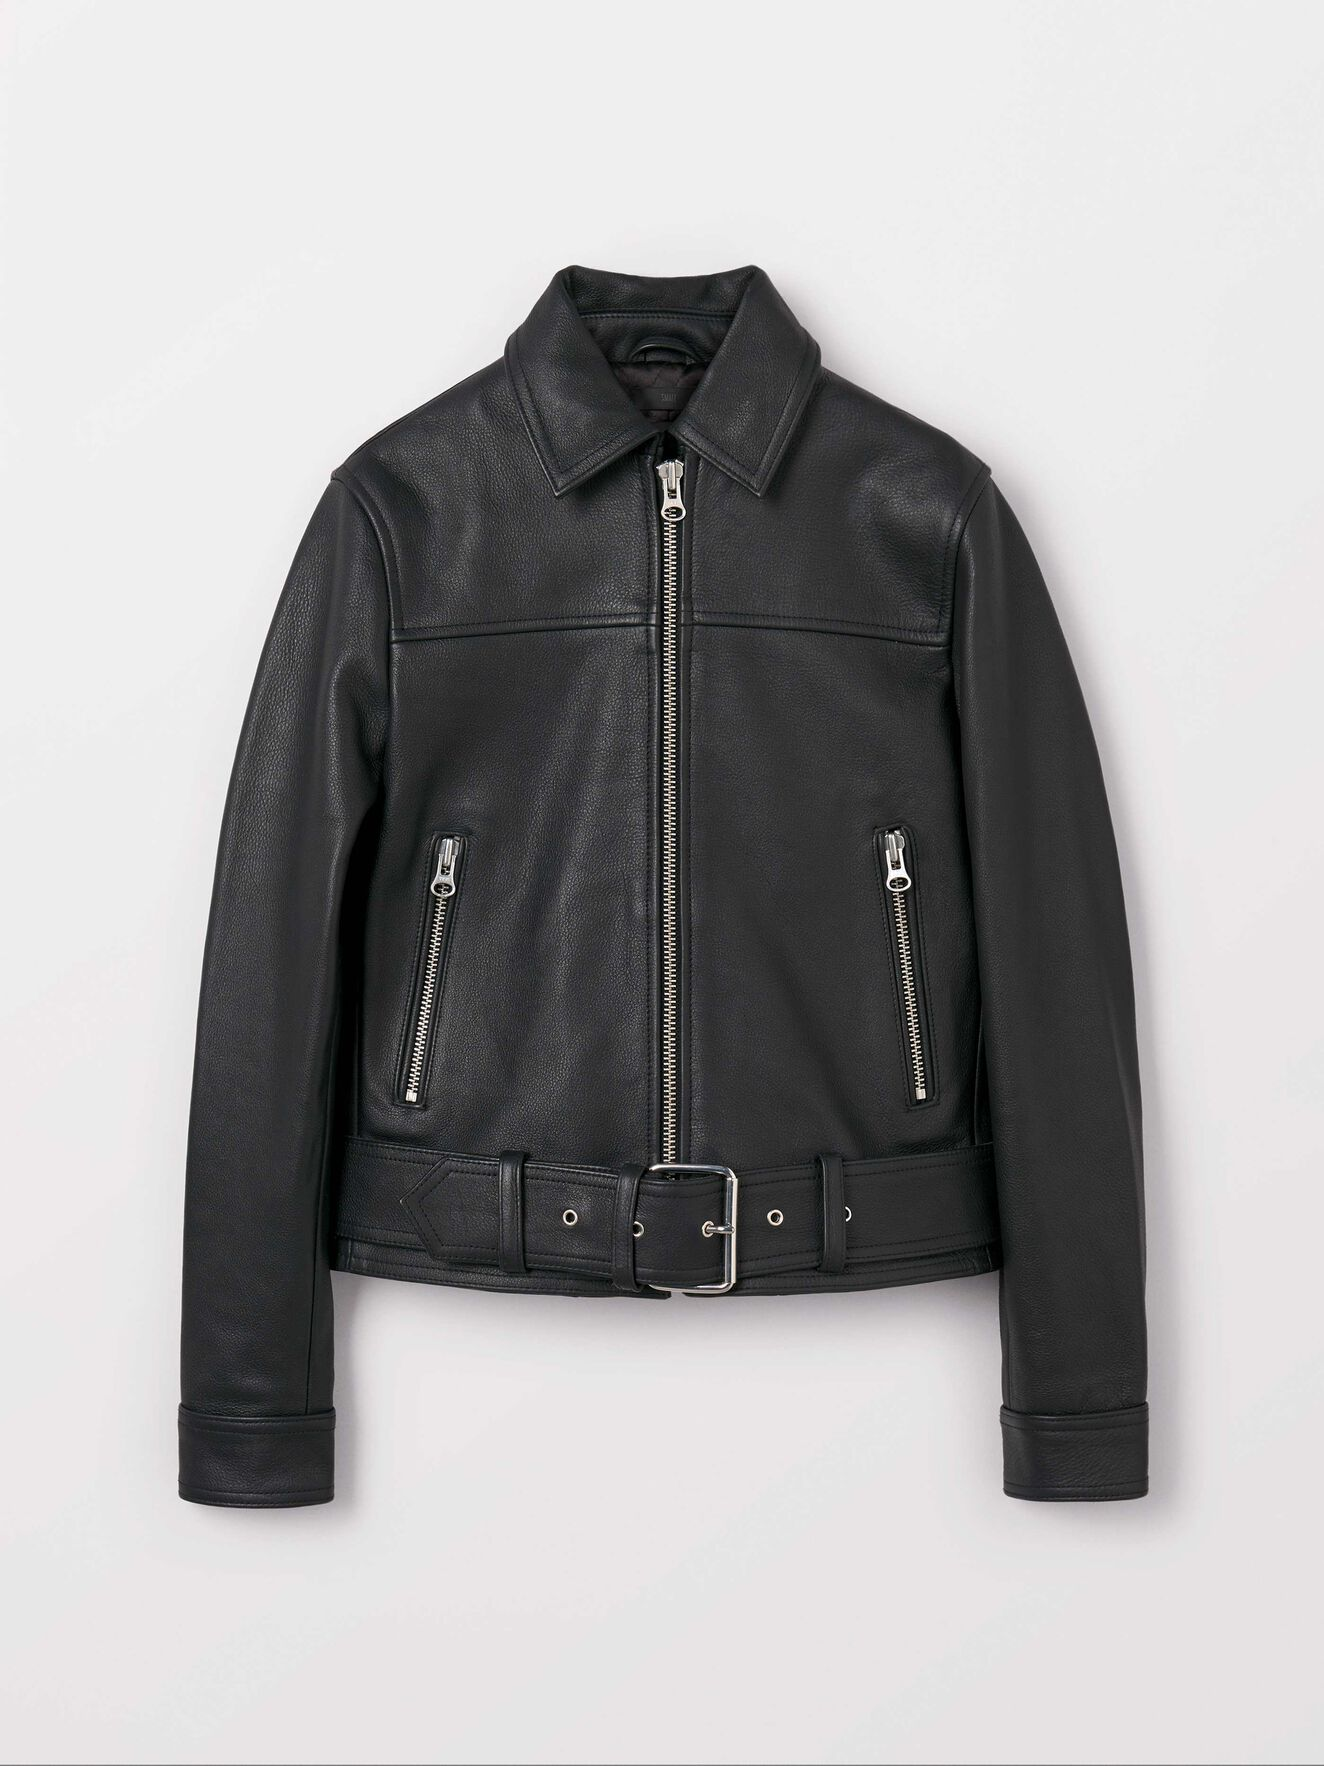 Vanilla Jacket in Black from Tiger of Sweden